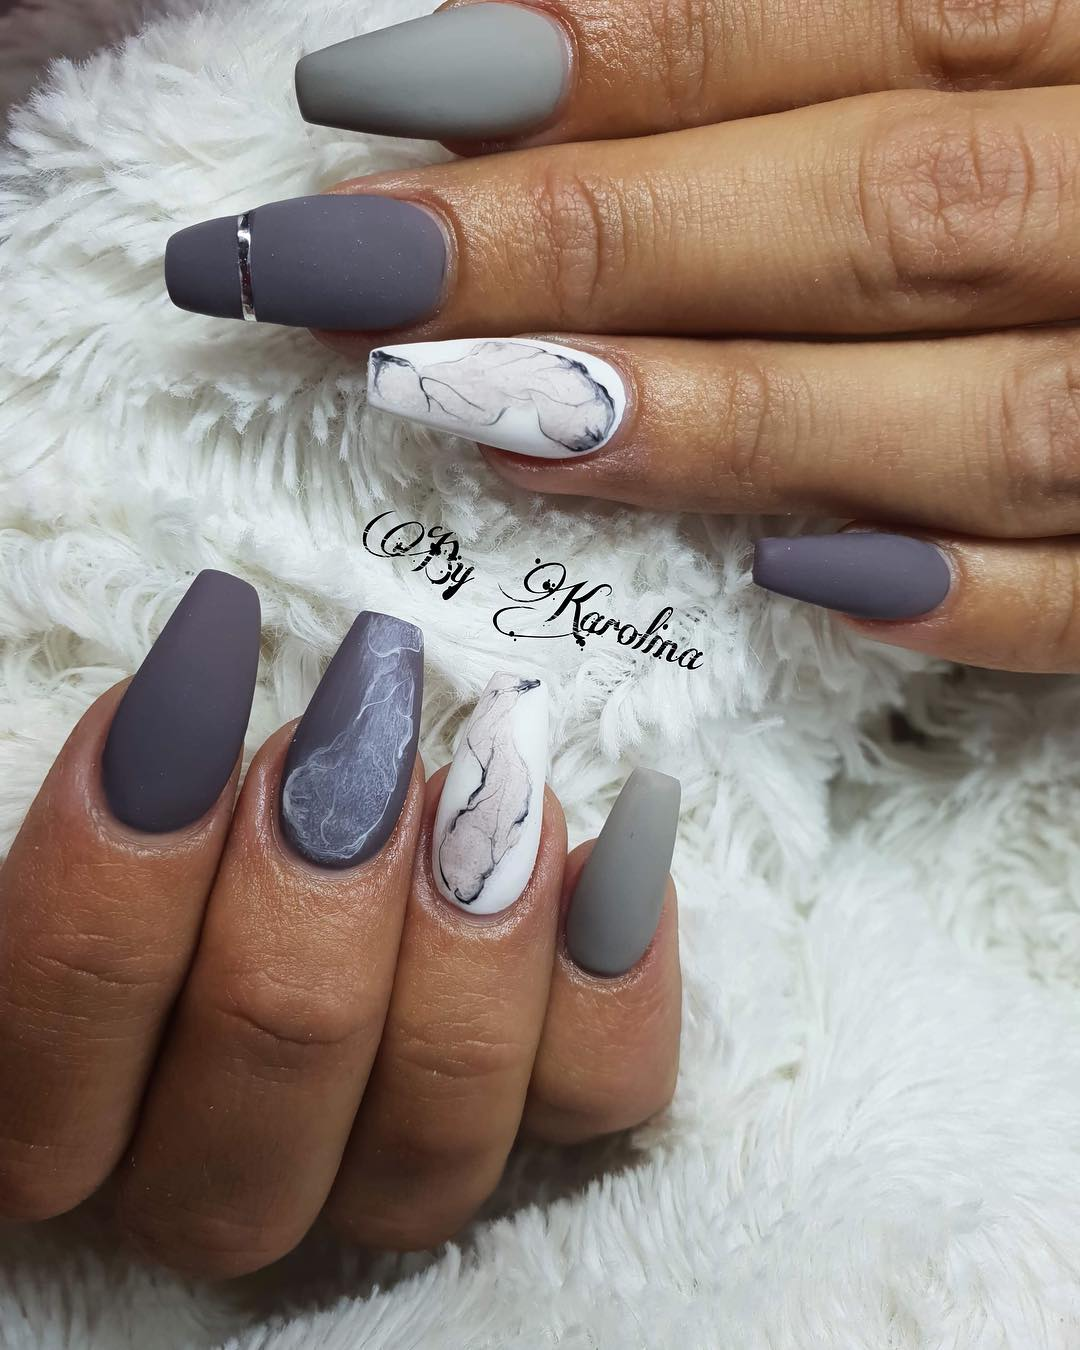 60 Trendy Short Coffin Nail Art Designs